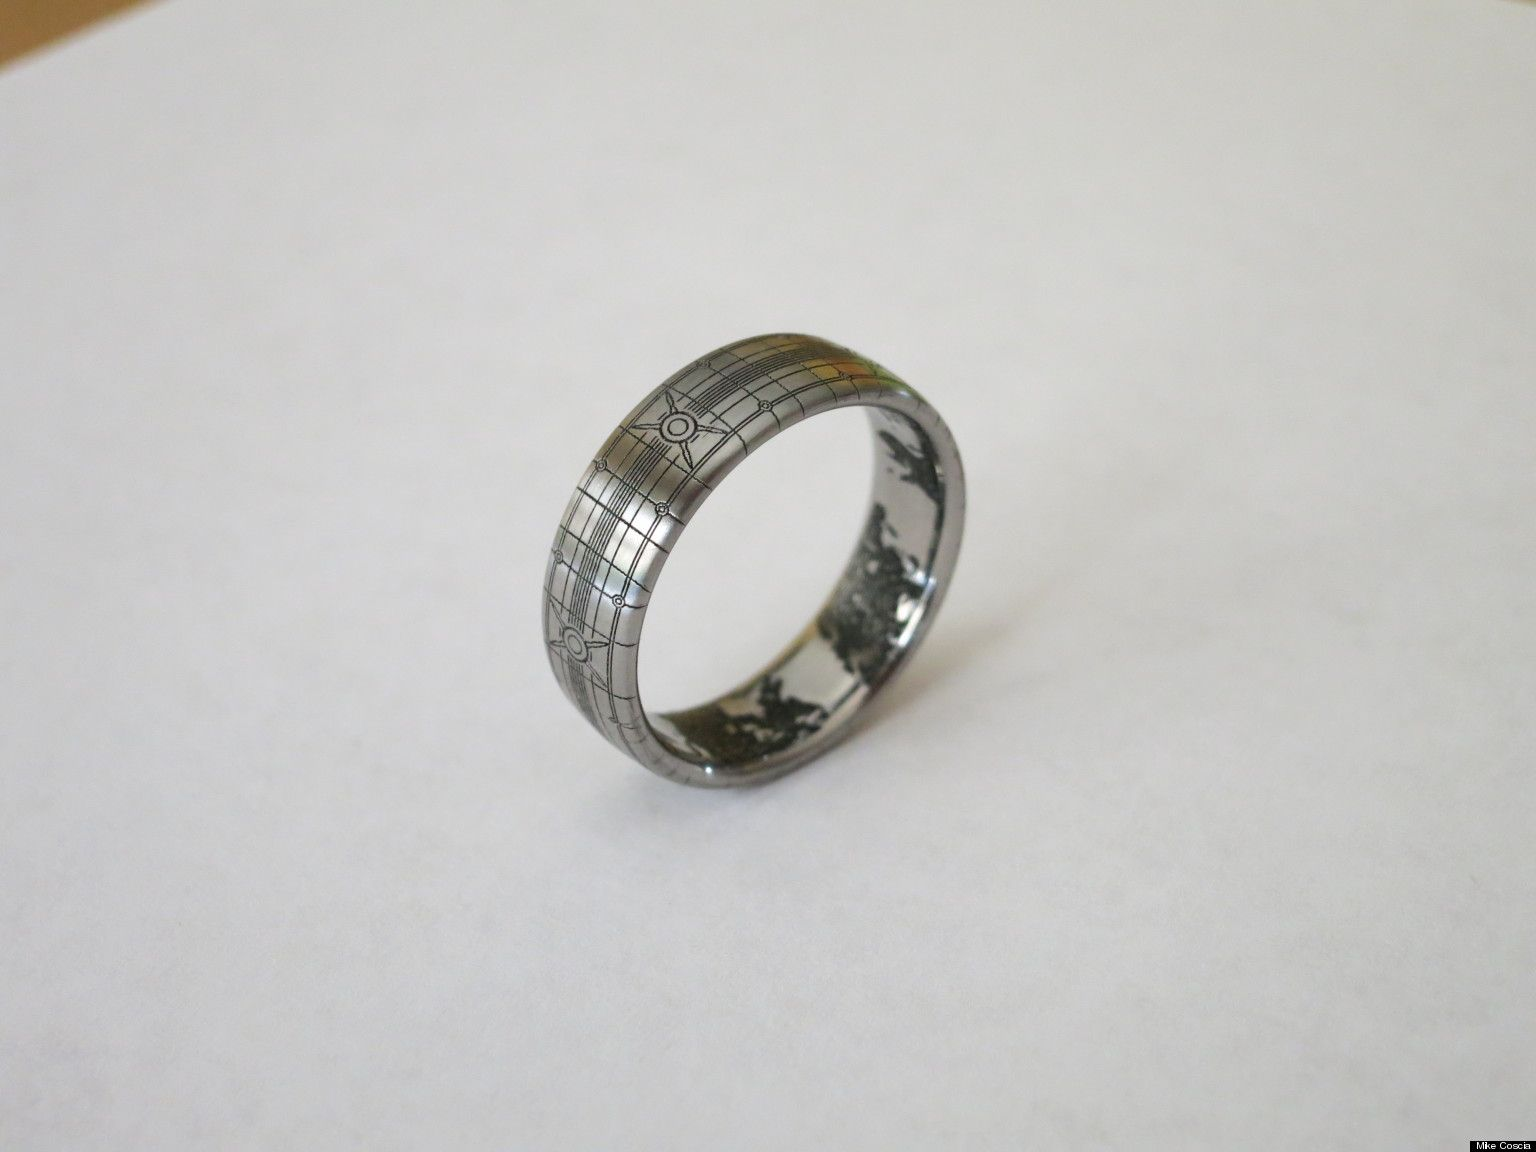 die hard halo fan mike coscia designed a wedding band inspired by the